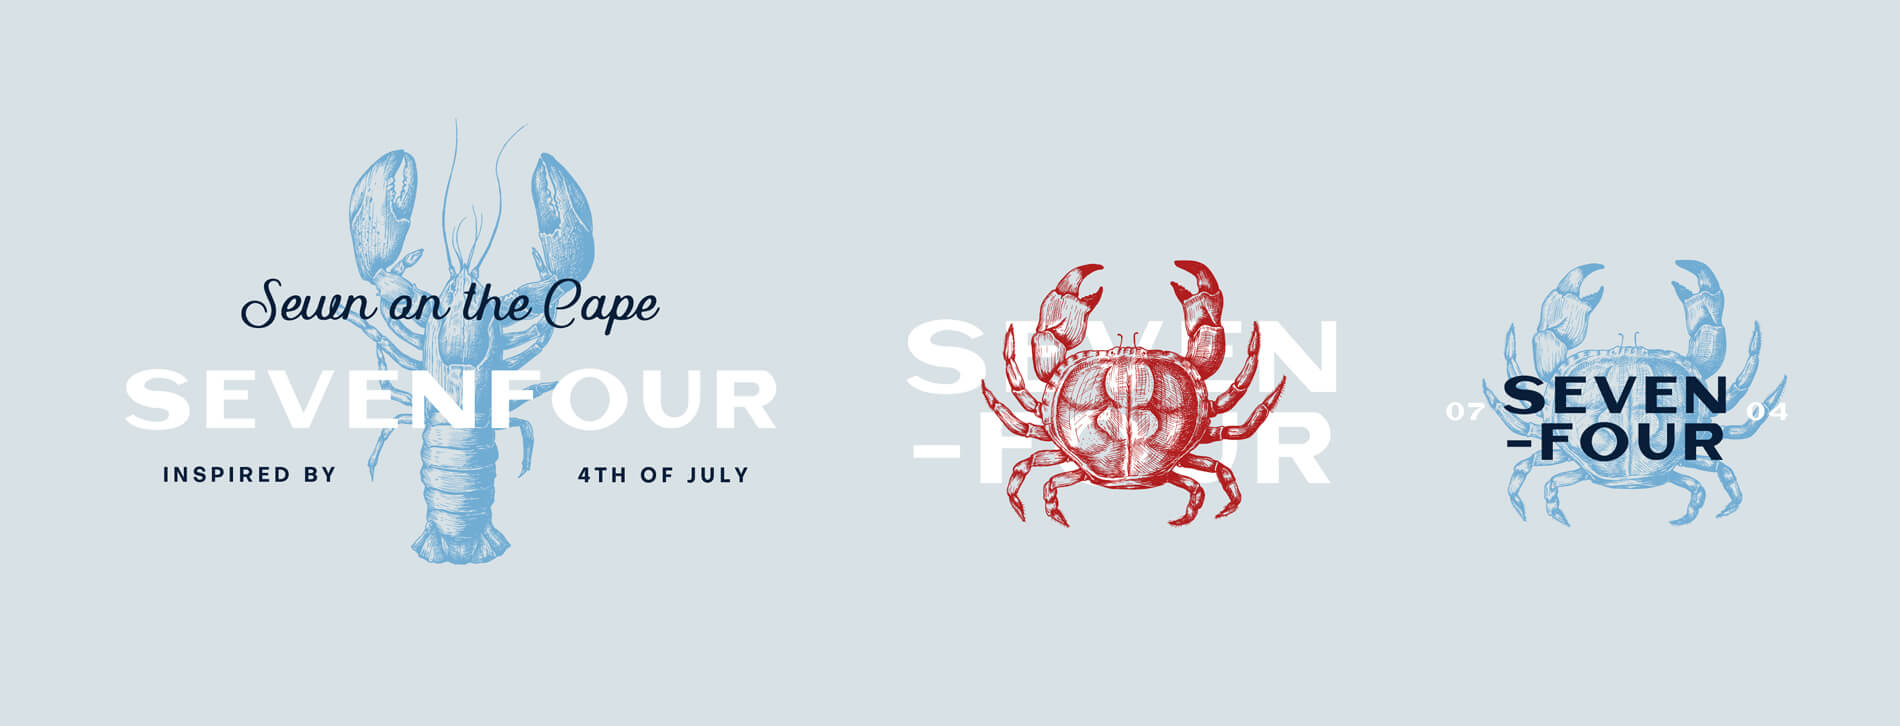 Alternative Sevenfour logos with lobster and crab illustrations